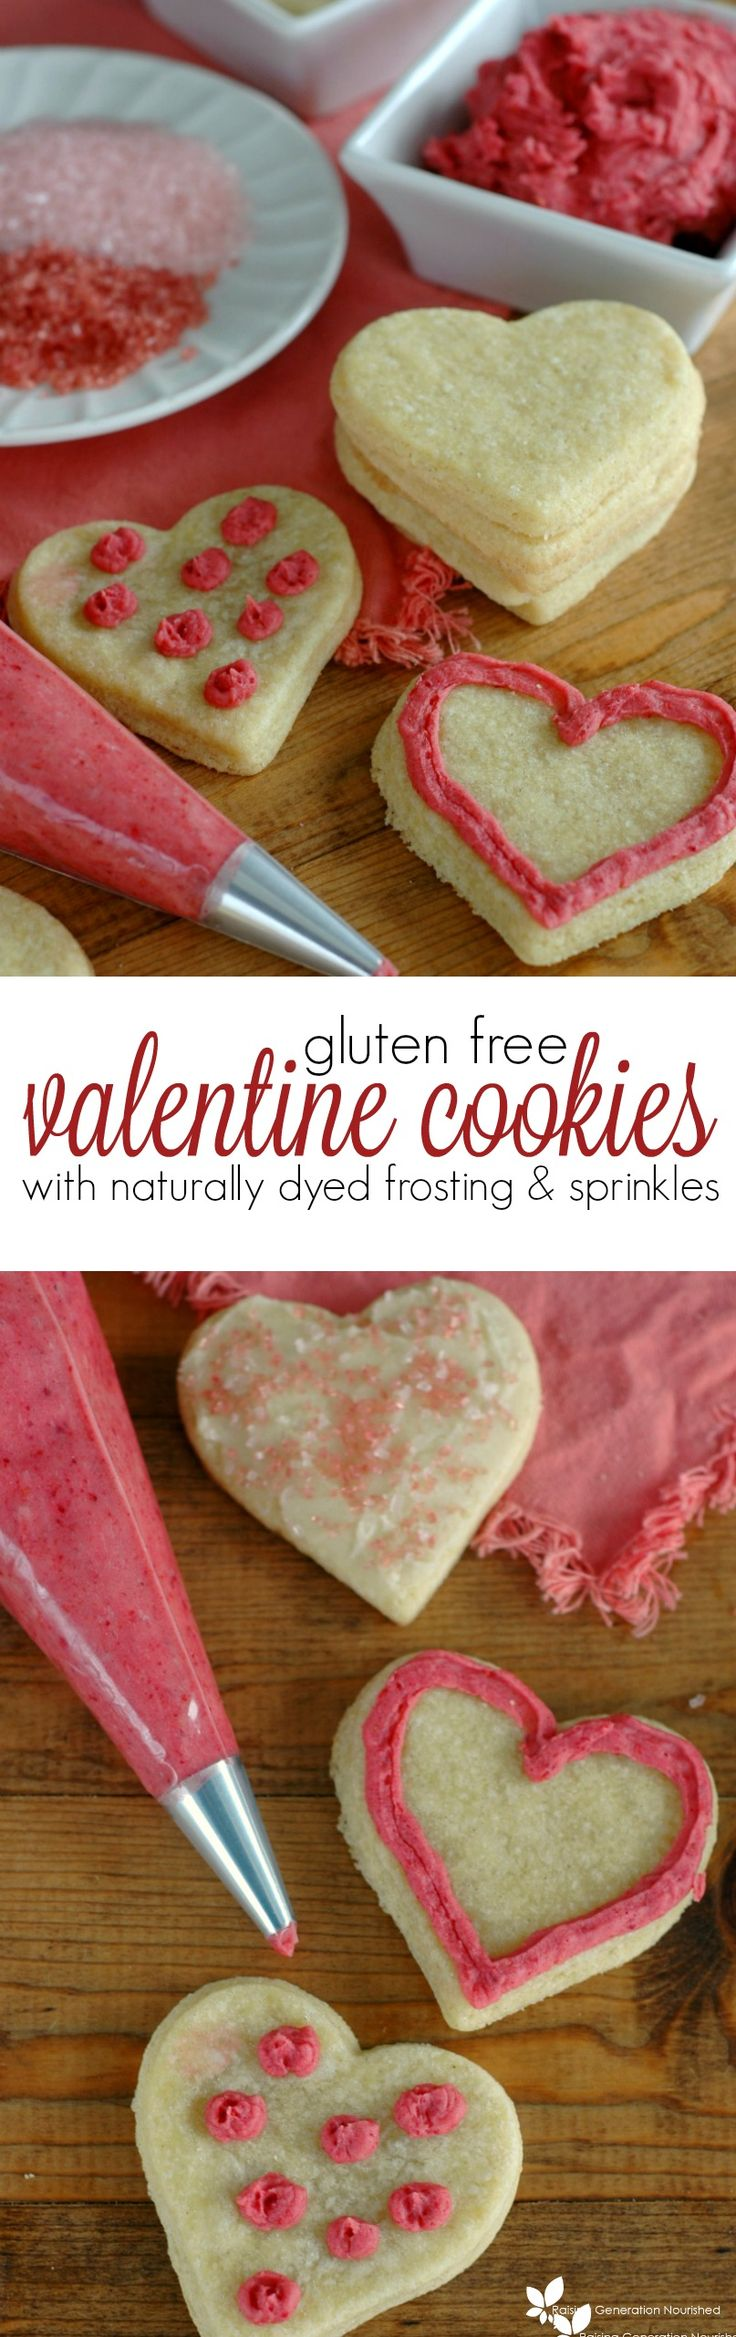 Gluten Free Valentine's Day Sugar Cookies With Naturally Dyed Frosting